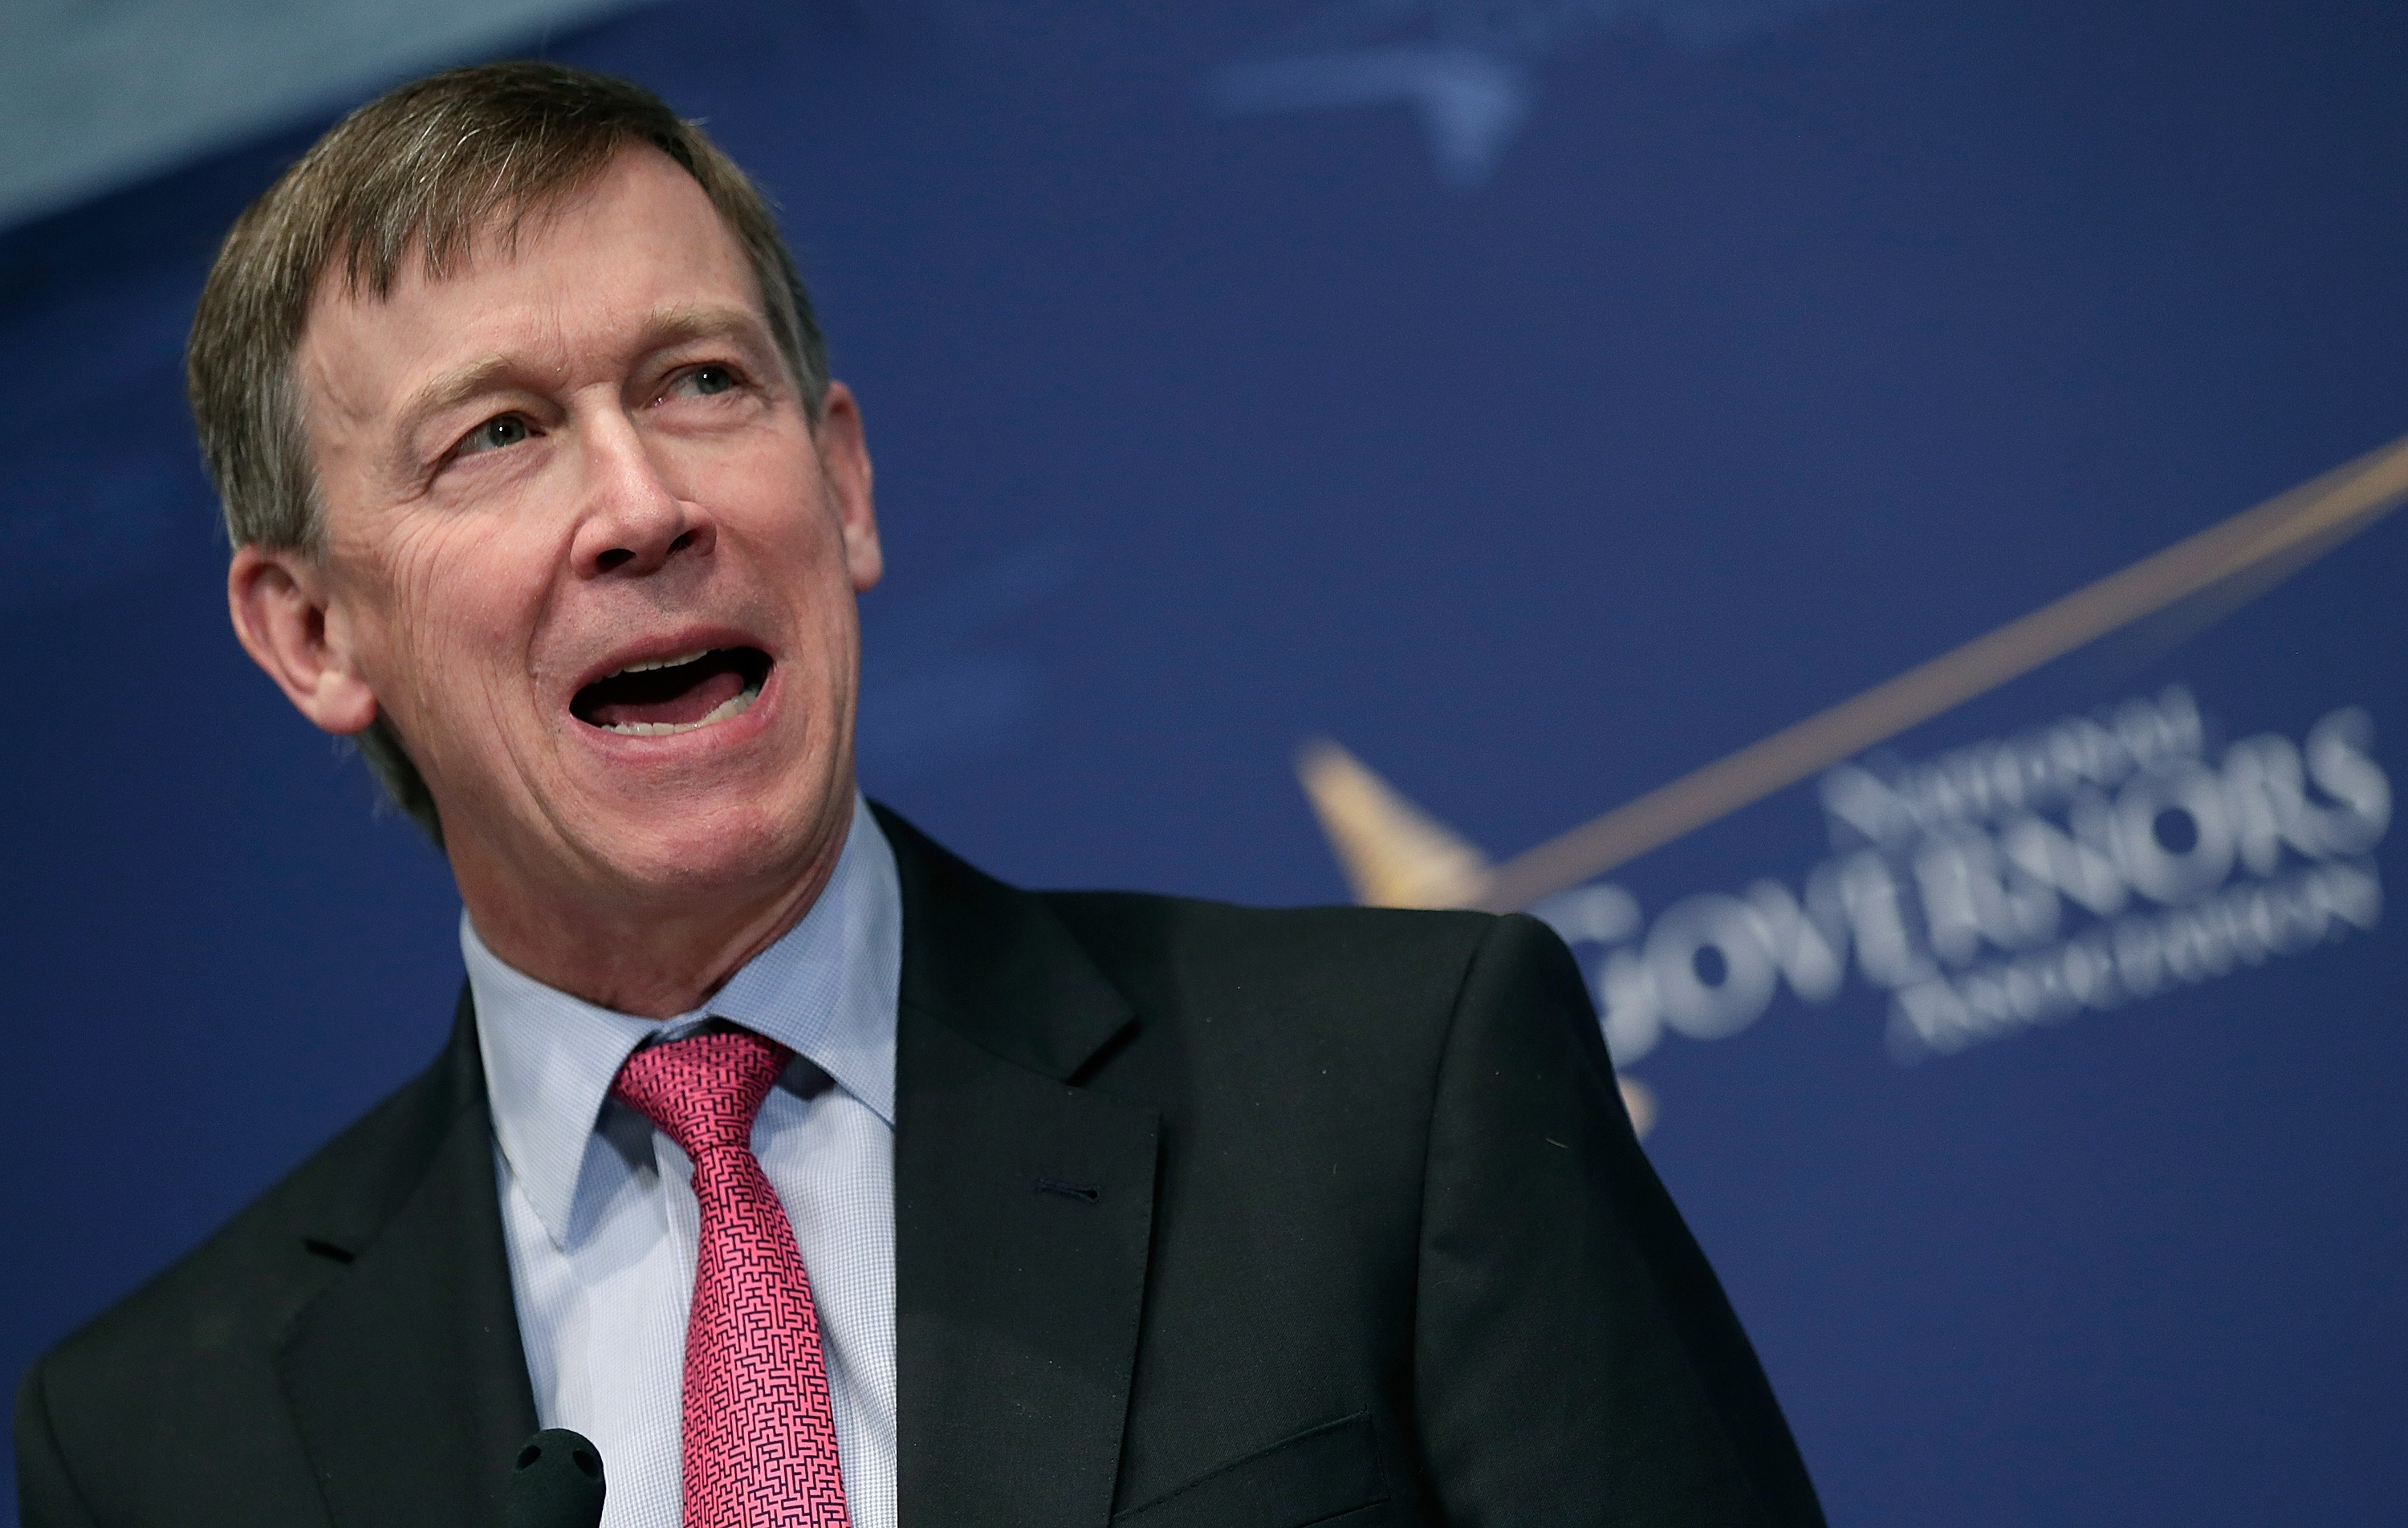 Colorado Governor John Hickenlooper, defender of legal marijuana in his state